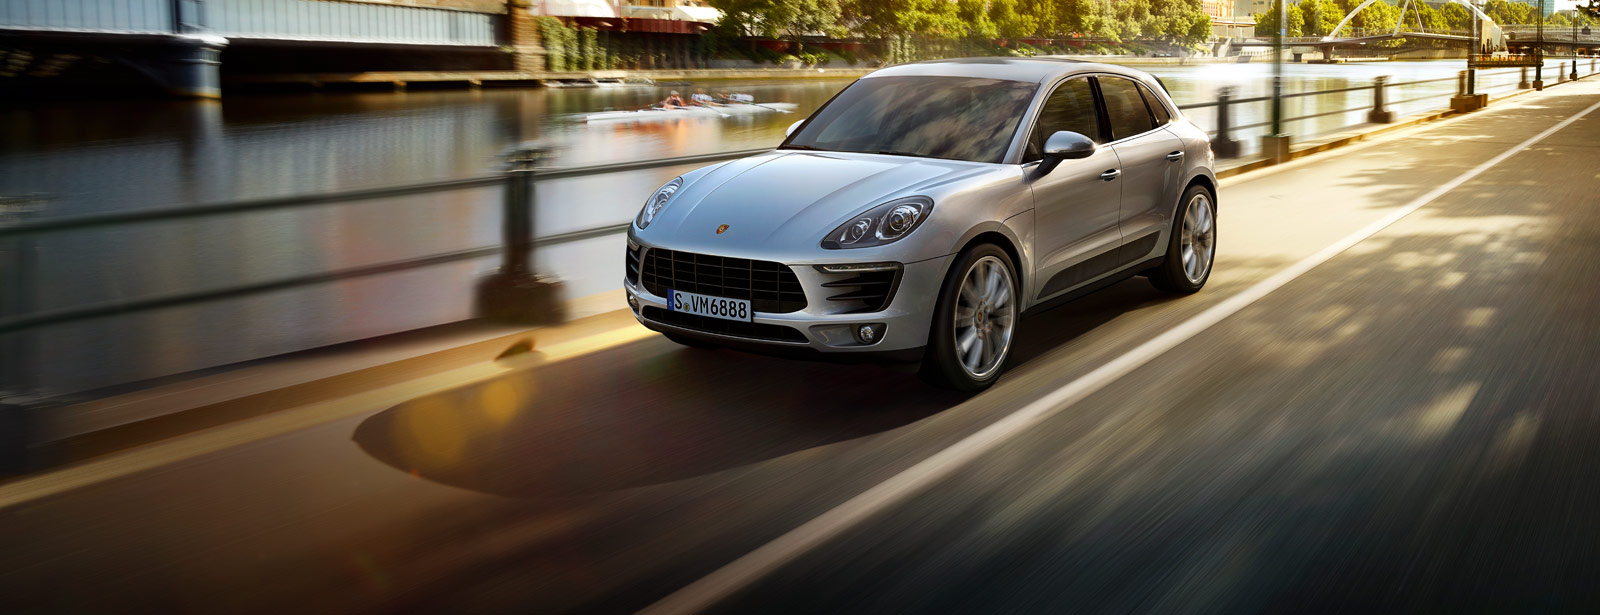 Porsche - Life, intensified. - The new Macan.